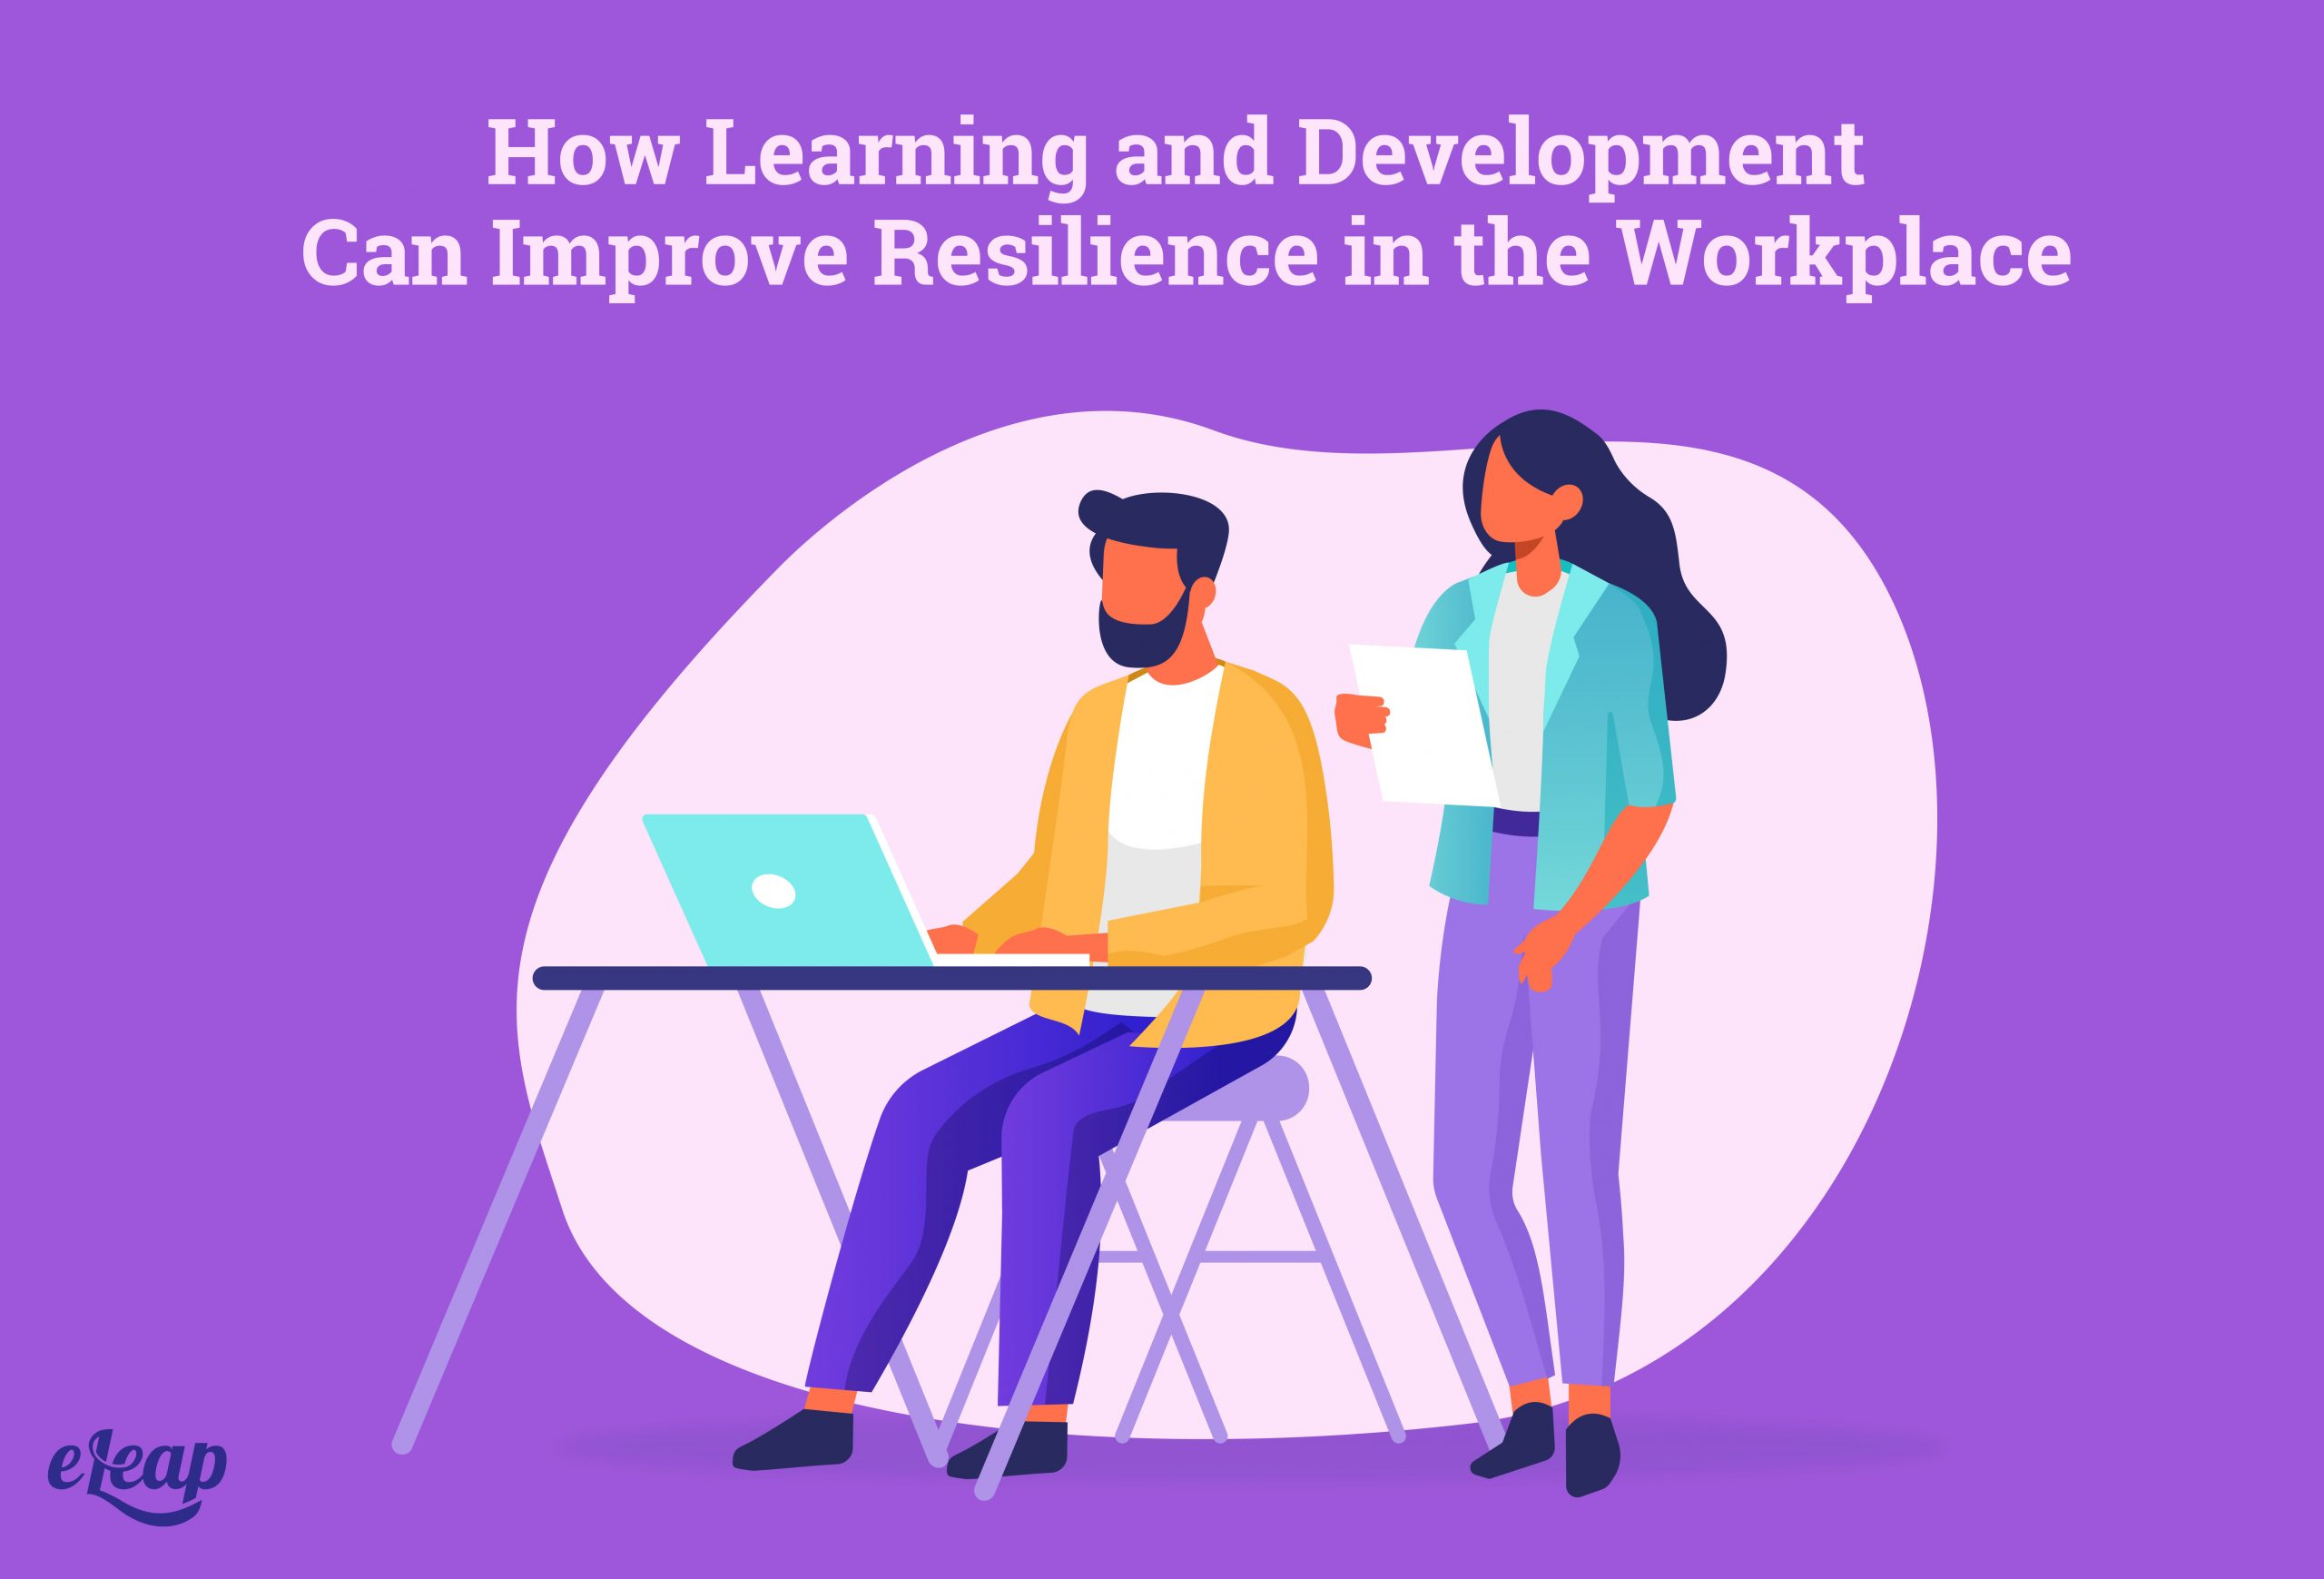 How Learning and Development Can Improve Resilience in the Workplace